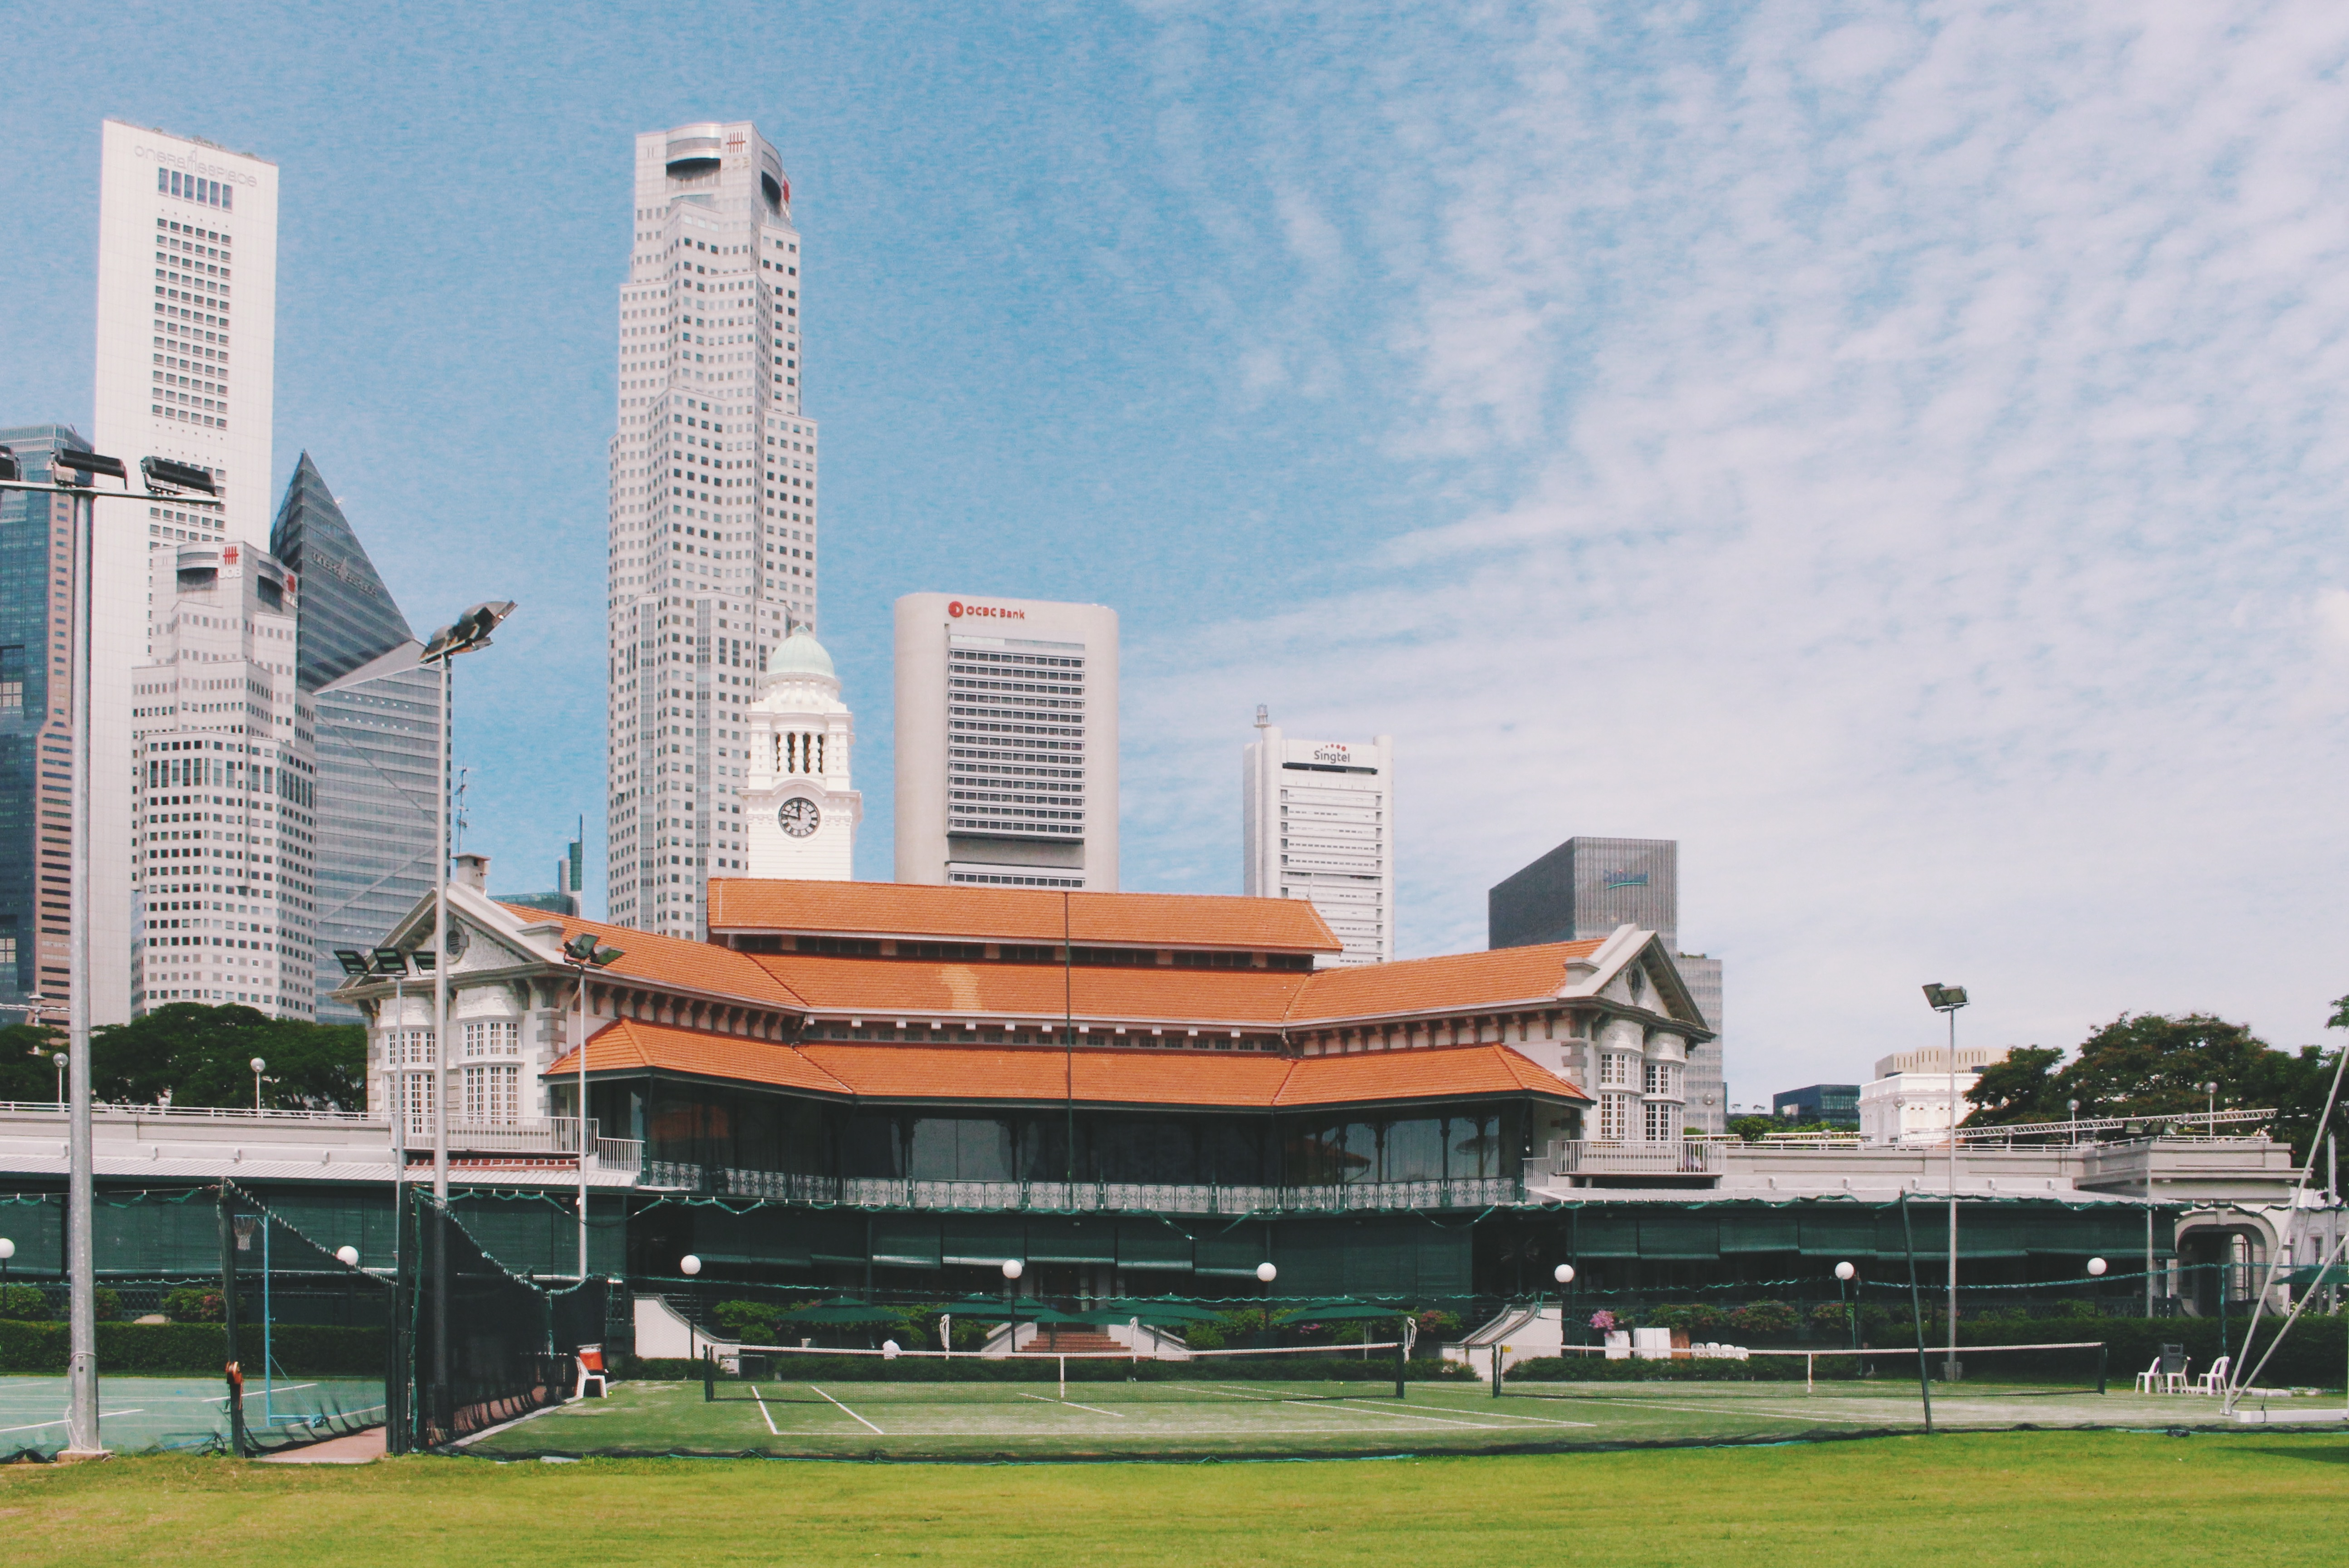 The Padang Cricket Ground.